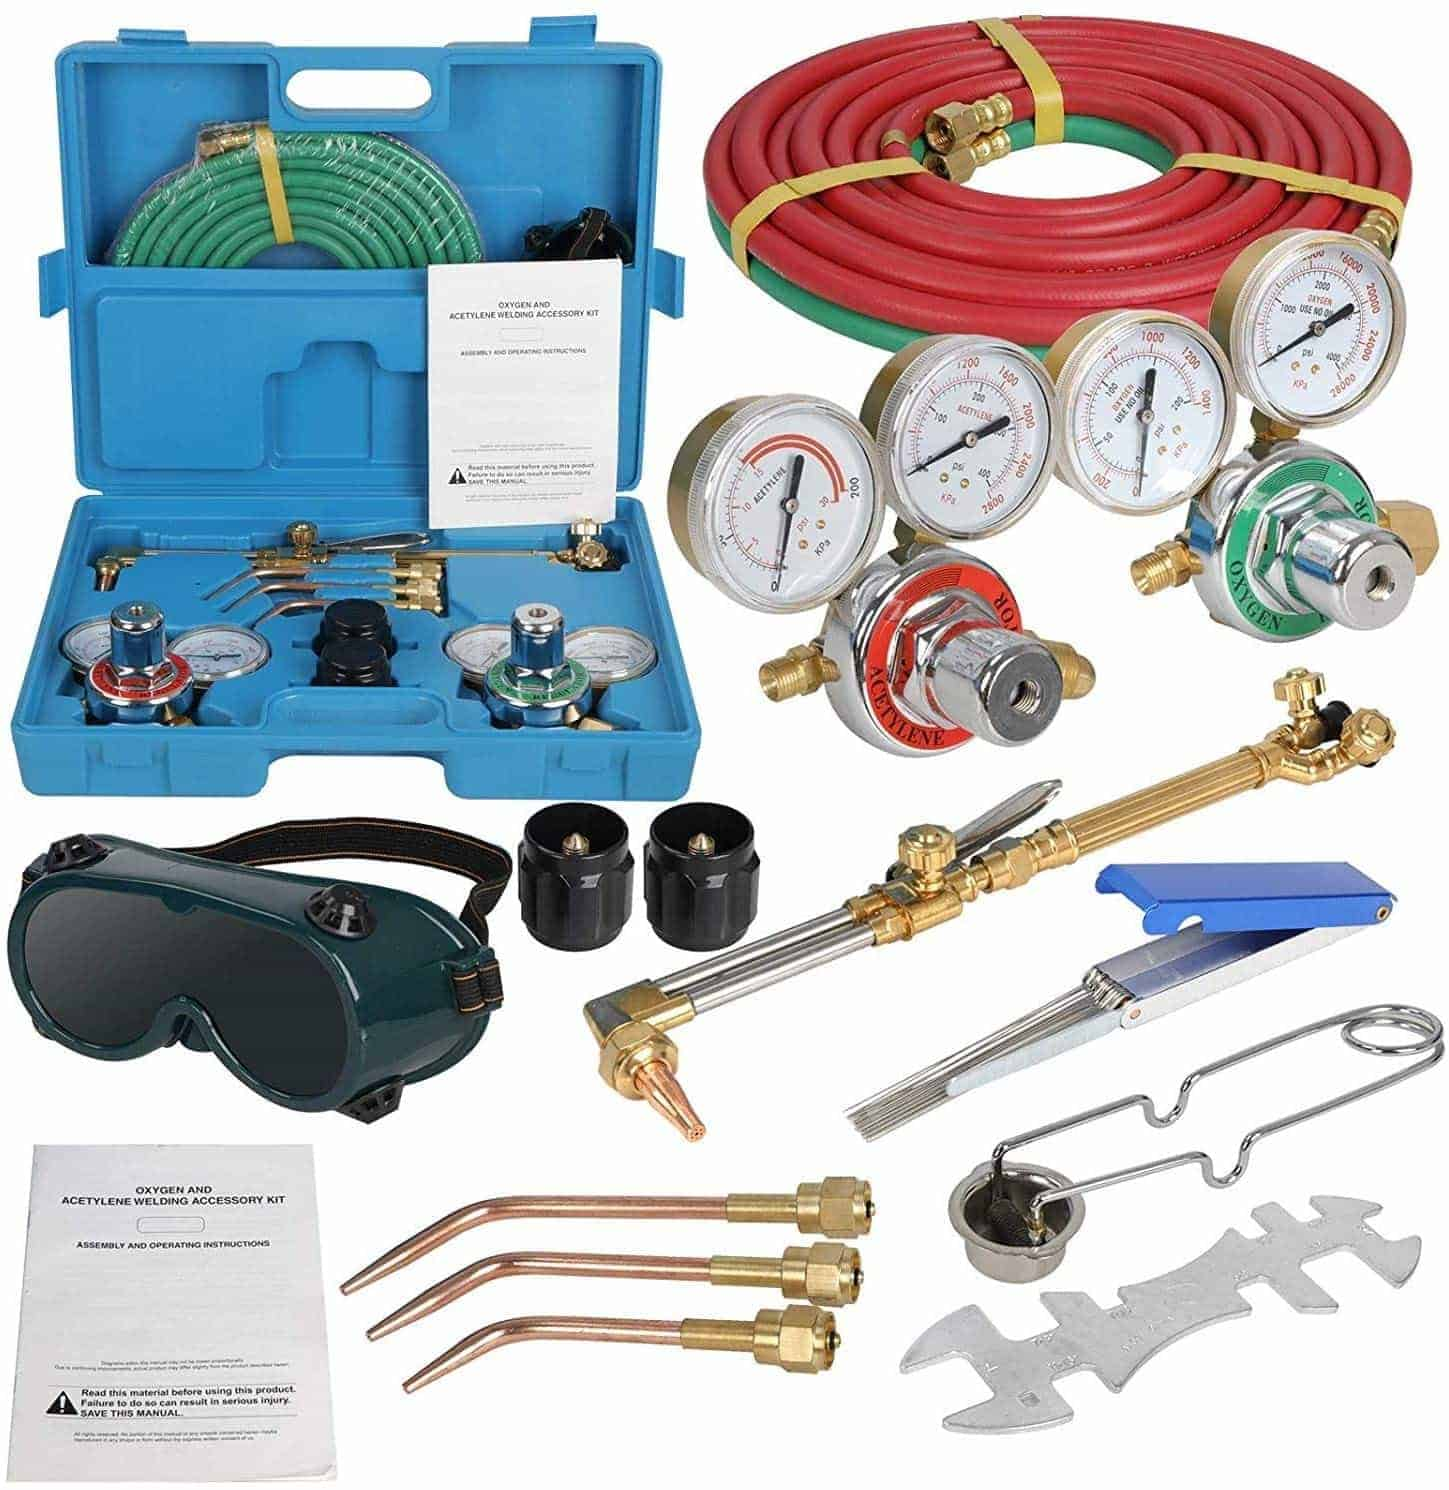 ZENSTYLE Cutting Torch and Welding Kit - Best Value